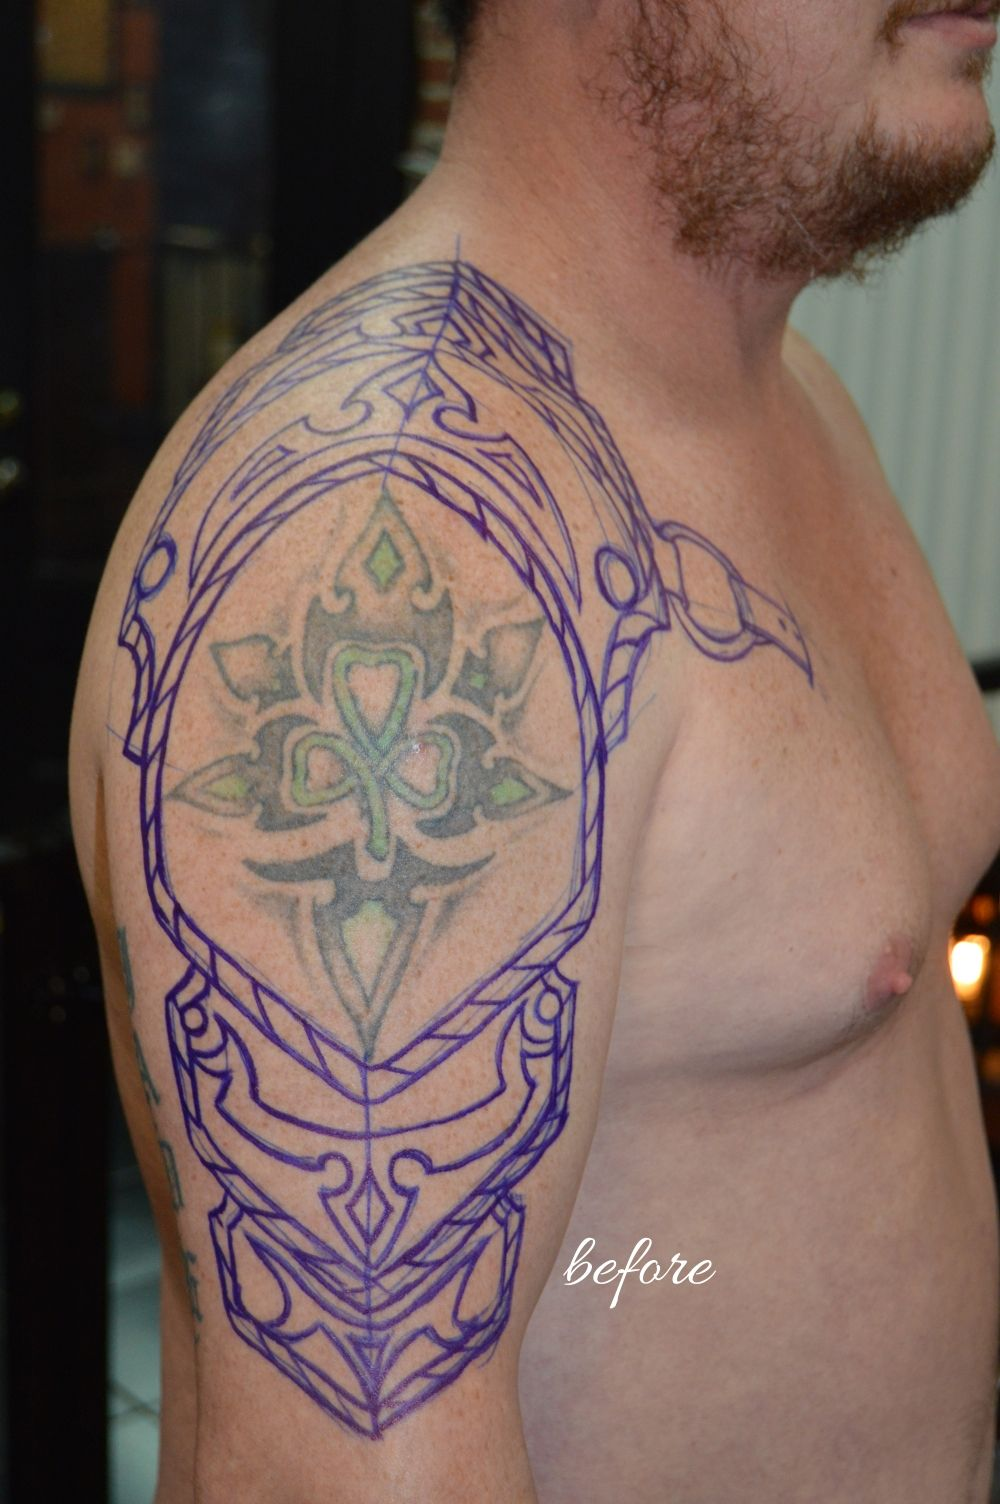 Cover Up Tattoos - True Grit Tattoo Parlor